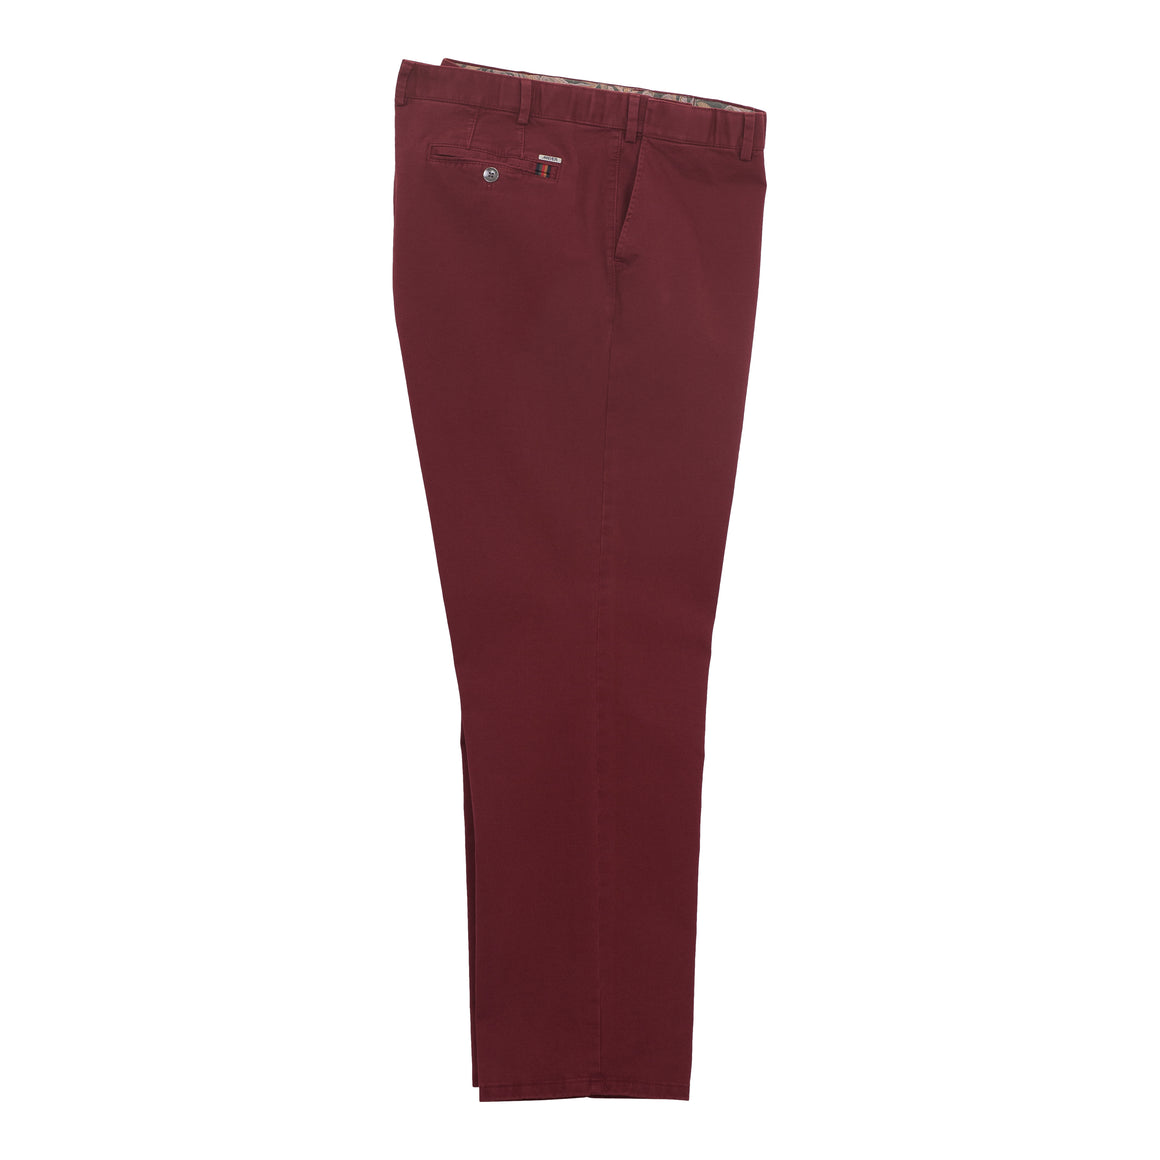 Oslo Chinos for Men in Burgundy